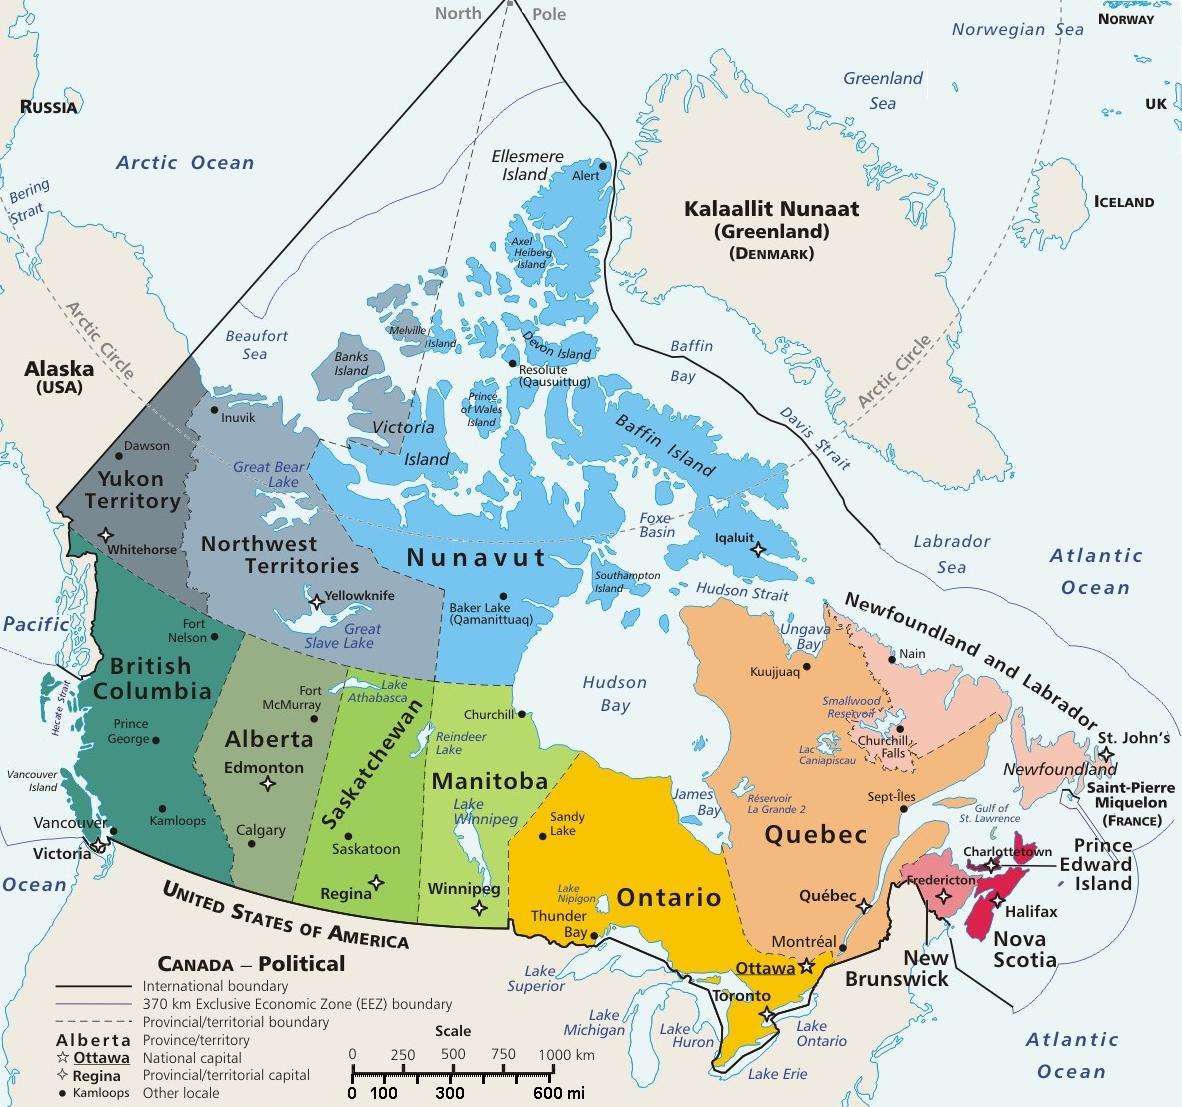 FileCanada geopolitical map trimjpg Wikimedia Commons